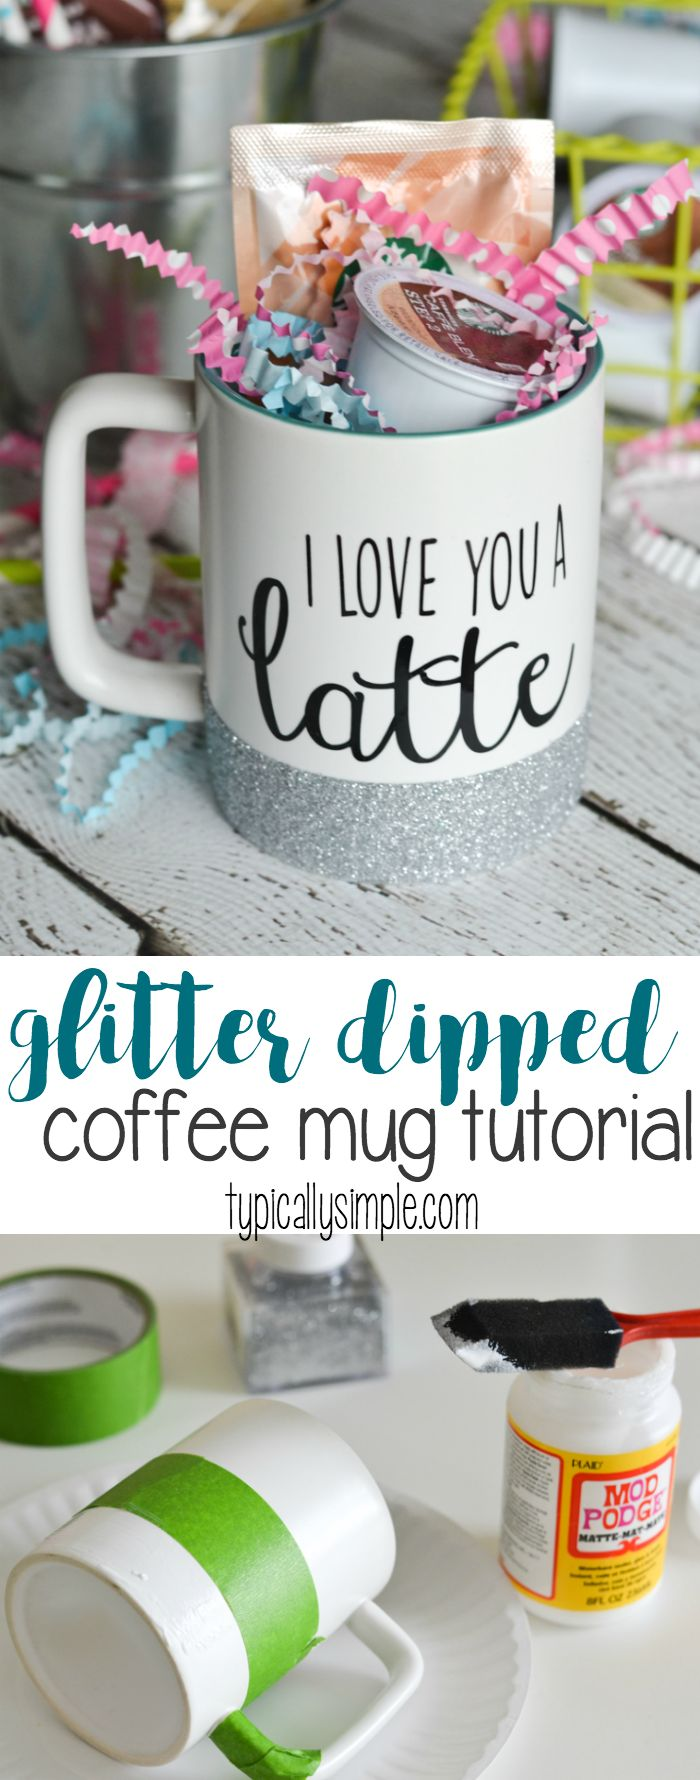 With a few basic craft supplies and this simple tutorial, make a glitter dipped coffee mug! Perfect to keep for yourself or give as a gift with a few k-cup pods! {ad}